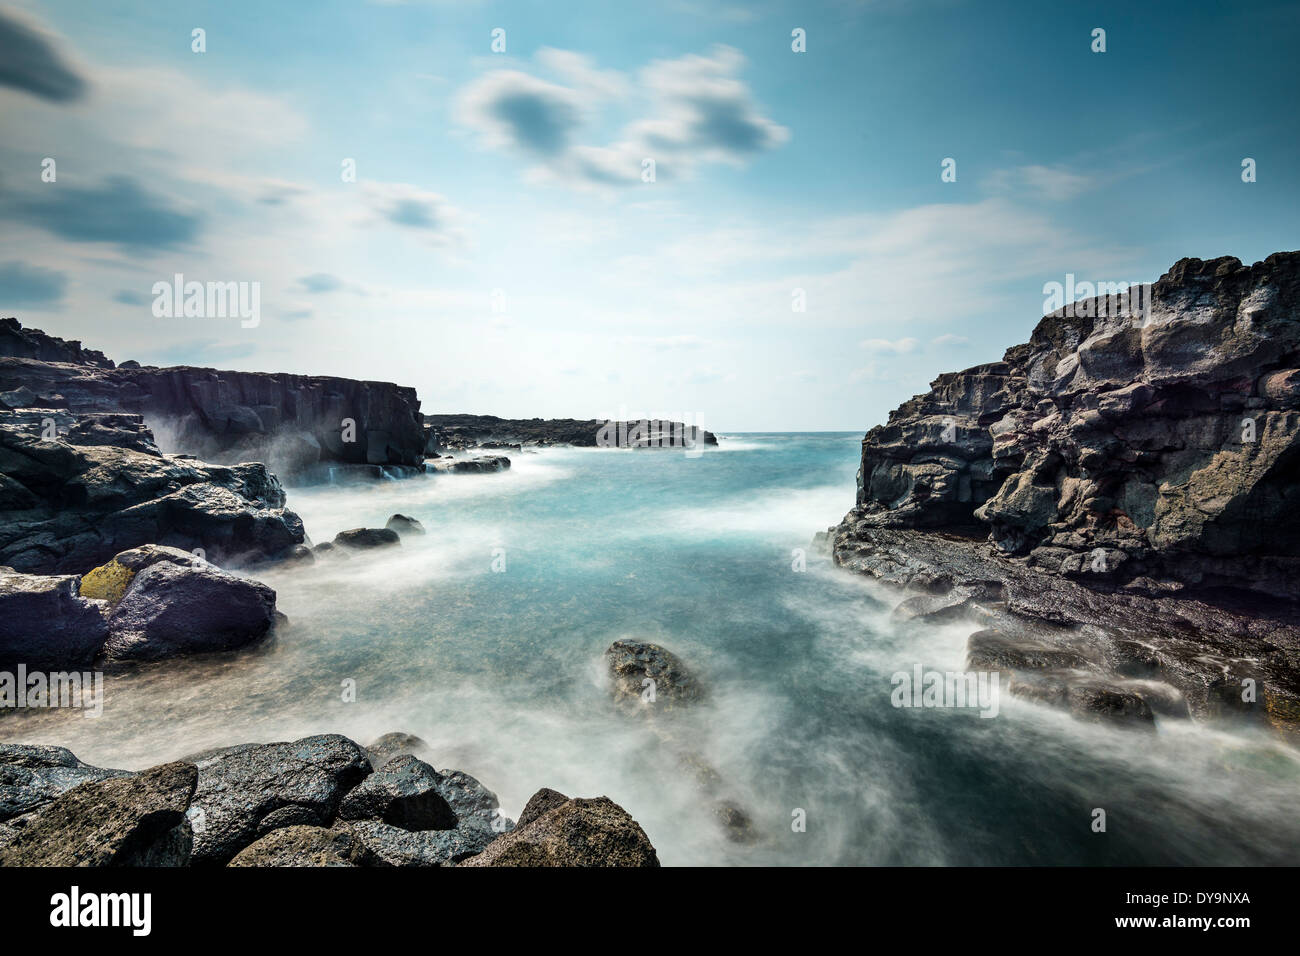 Volcanic rock on the Coastline of Hachijojima, Japan. - Stock Image